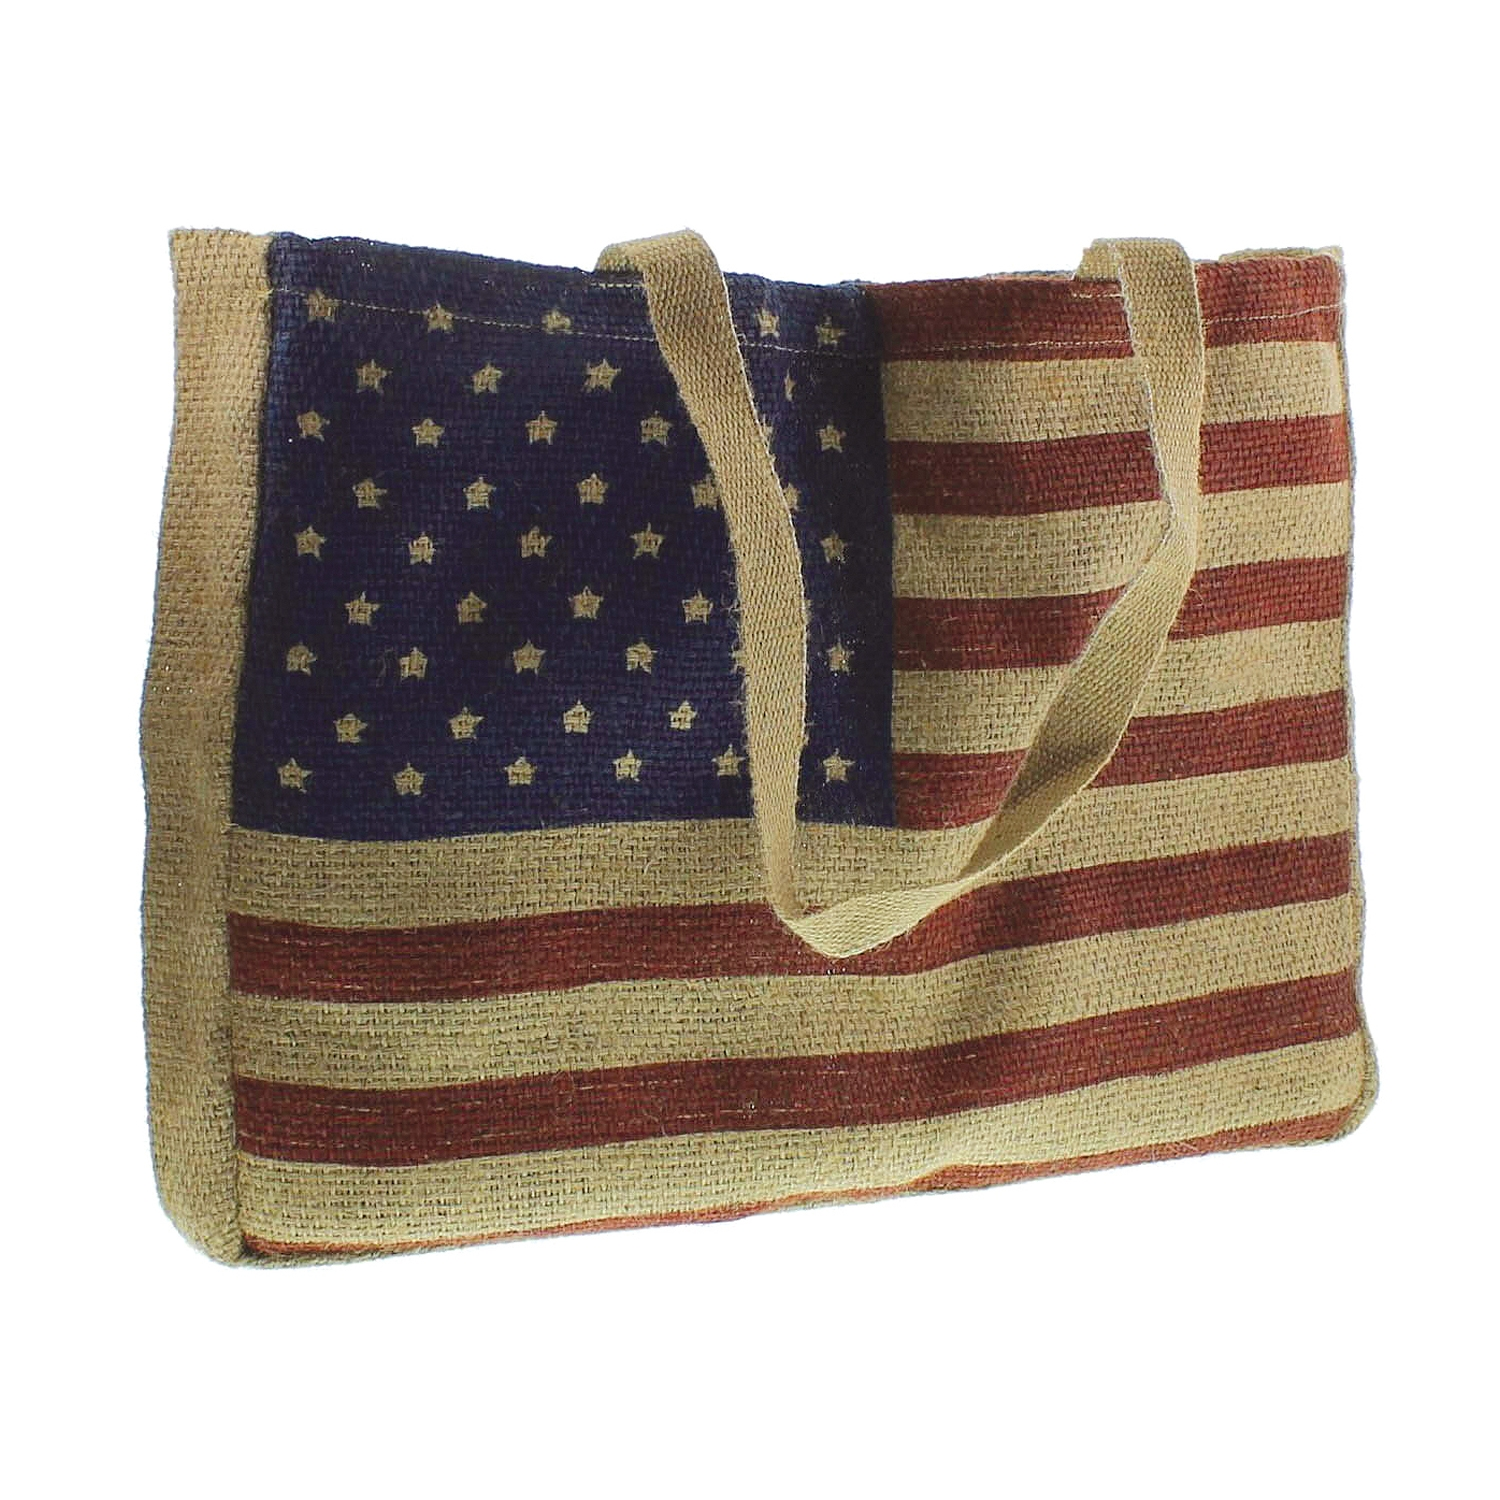 9905-101 - Twill Tote - Old Glory Flag by HomArt